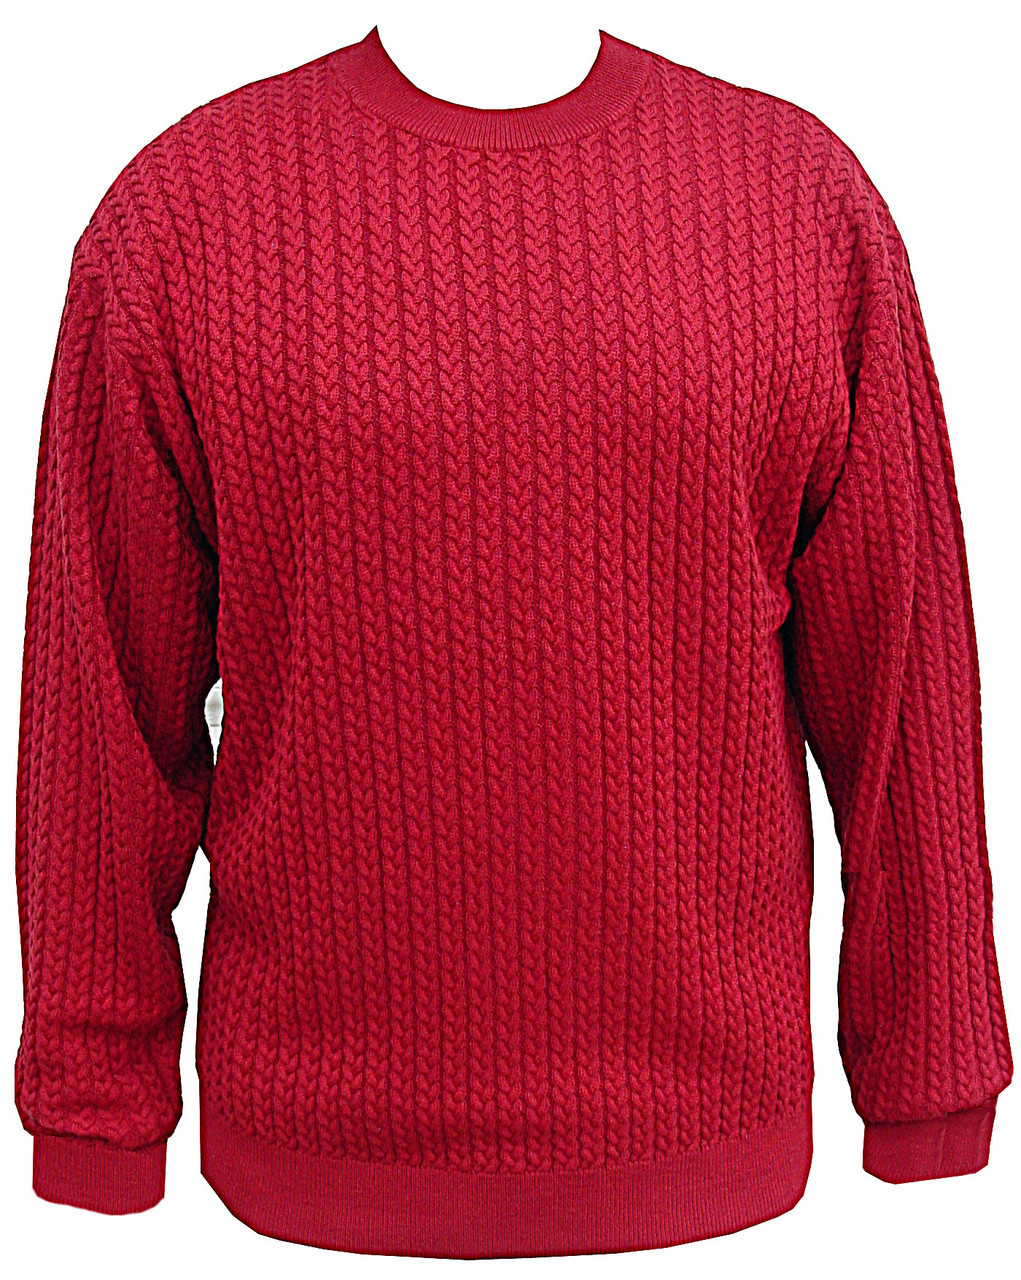 432a557147f1 Men s 72%Silk 28%Mercerized Cotton Baby Cable Sweaters - FonteShirts.com